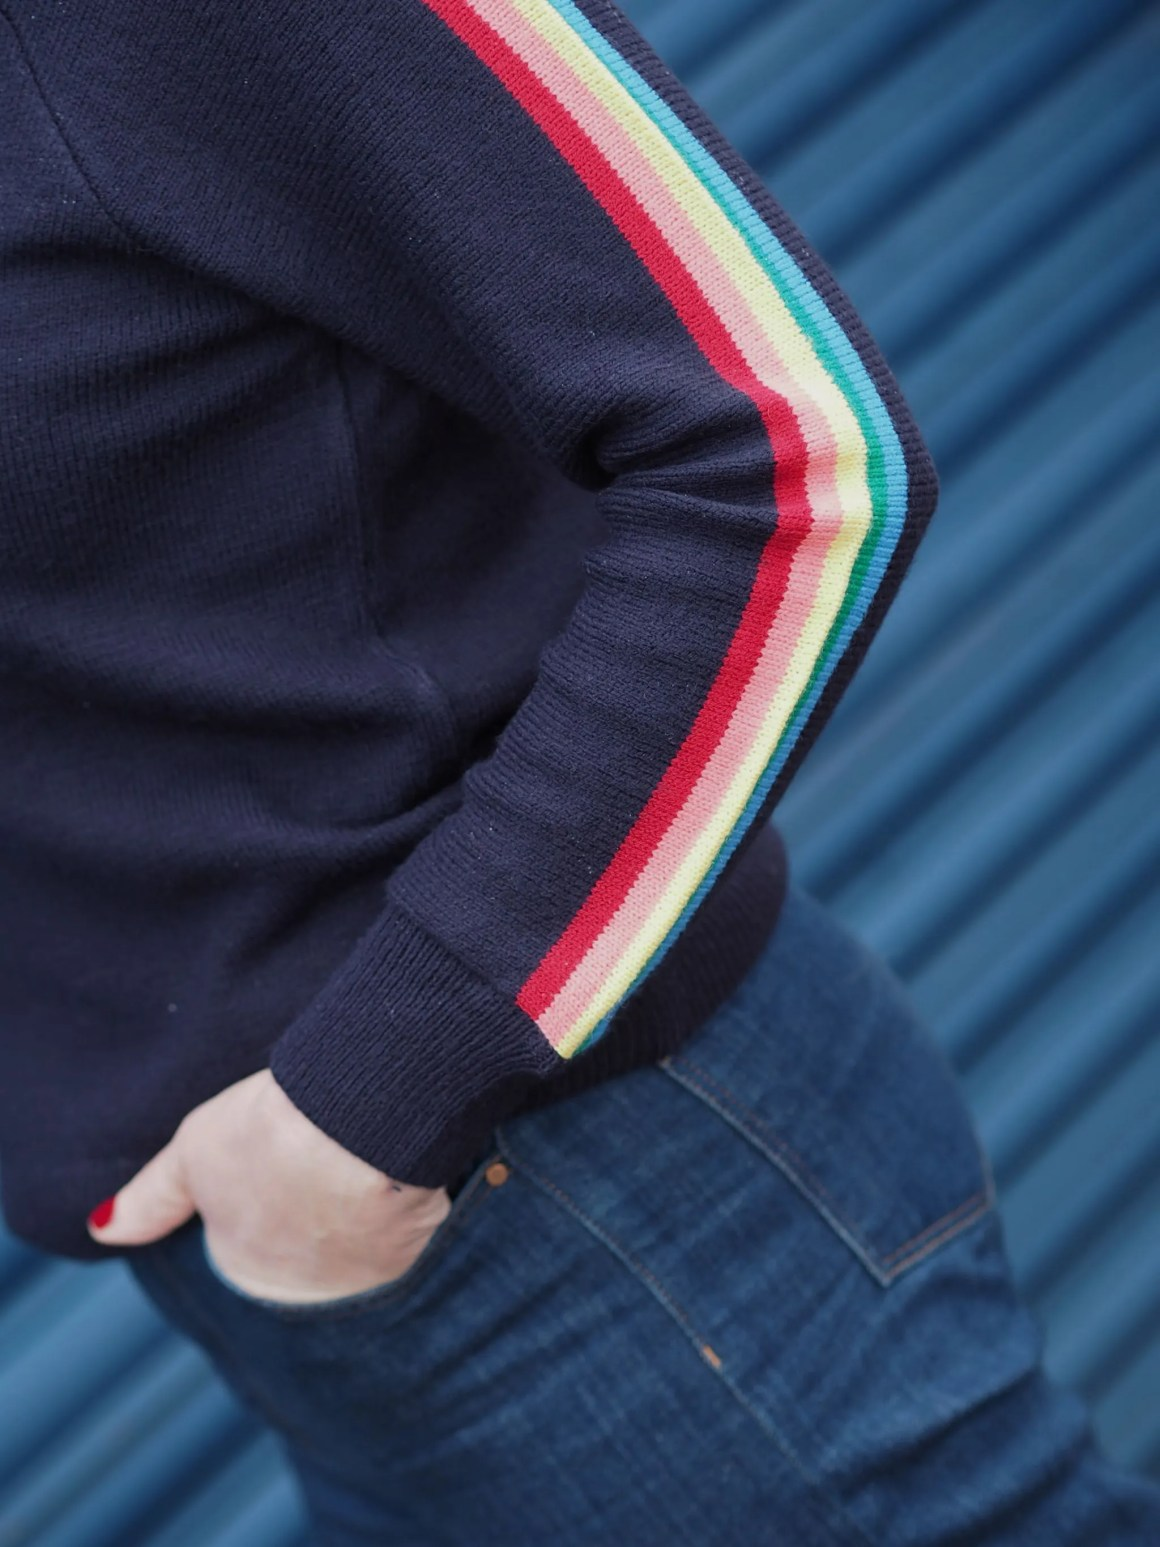 Forty plus blogger What Lizzy Loves wearing rainbow sleeve jumper